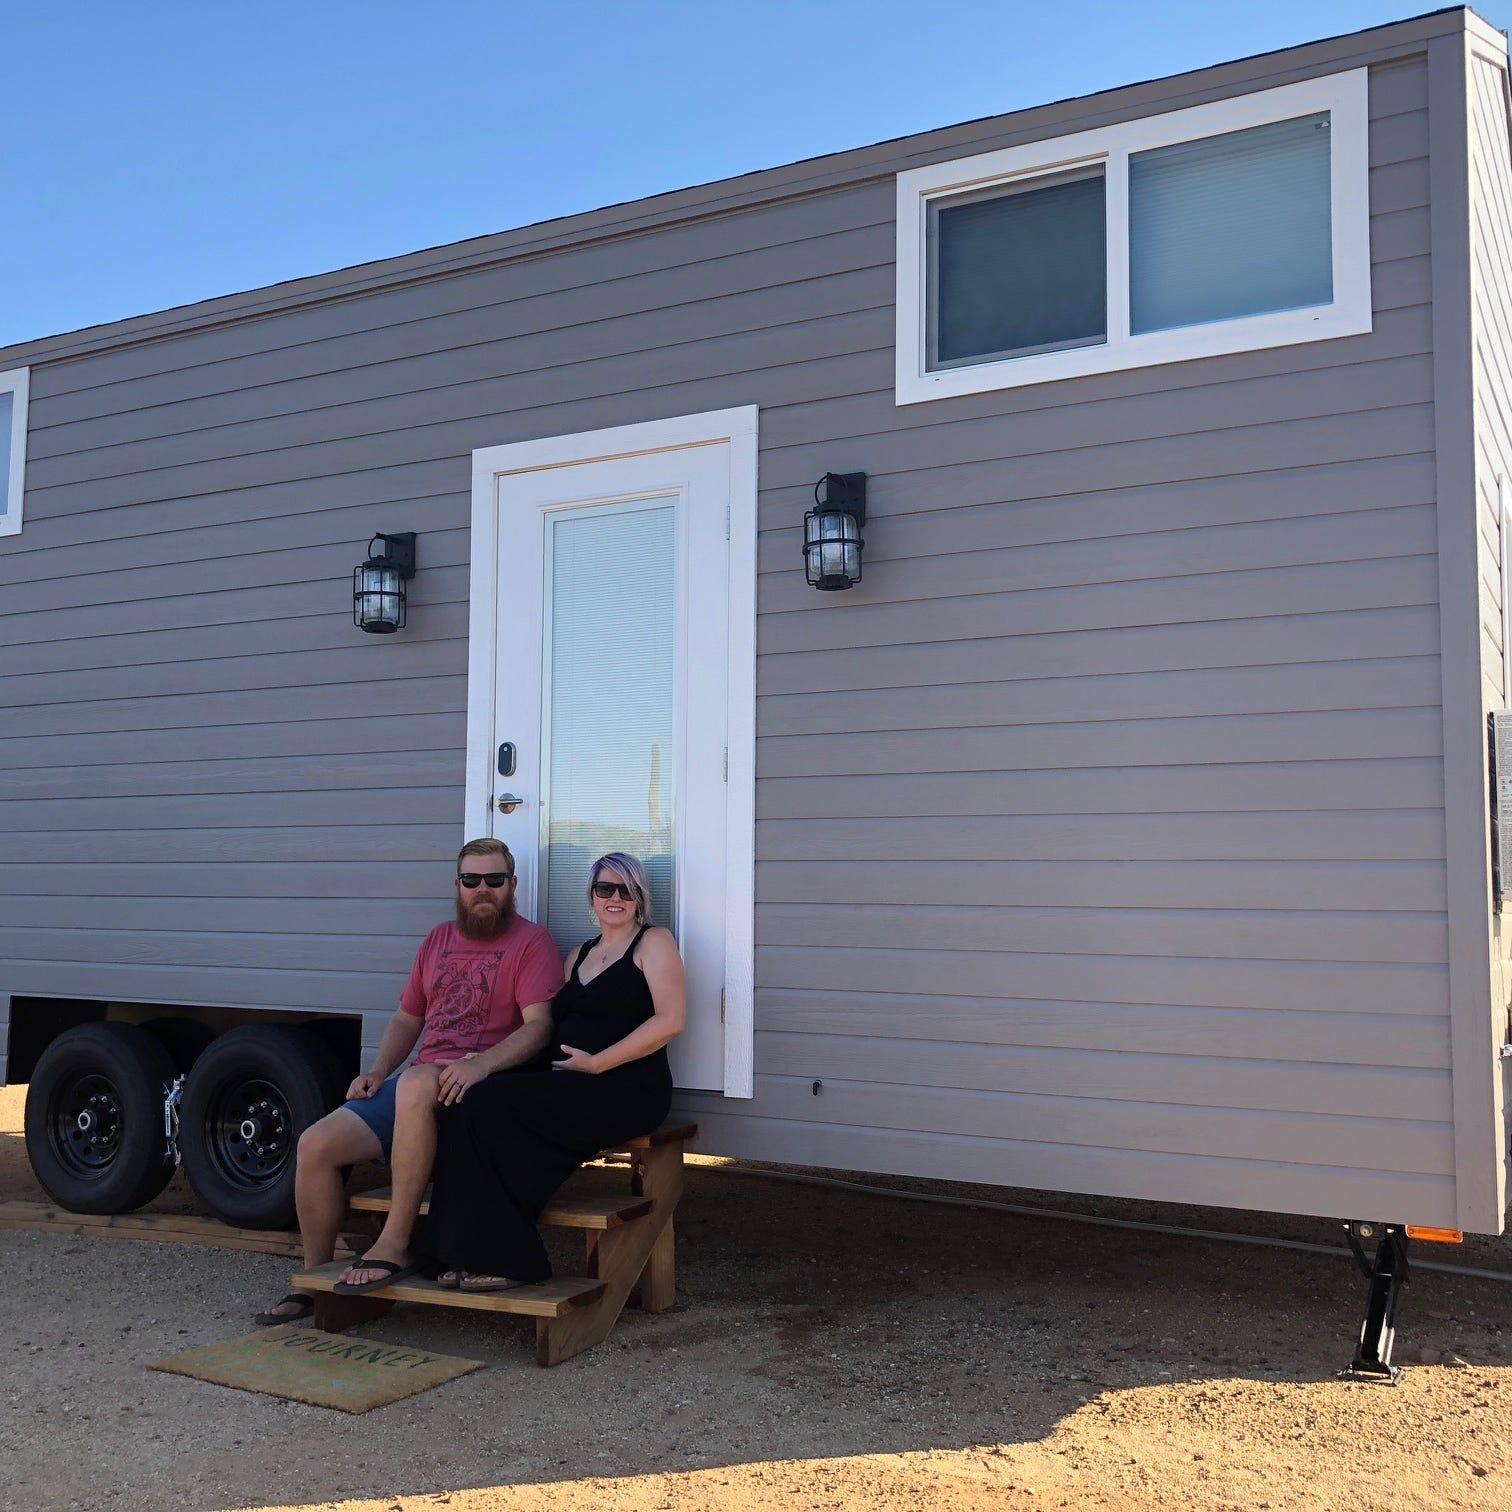 Arizona families brave uncharted territory in tiny homes